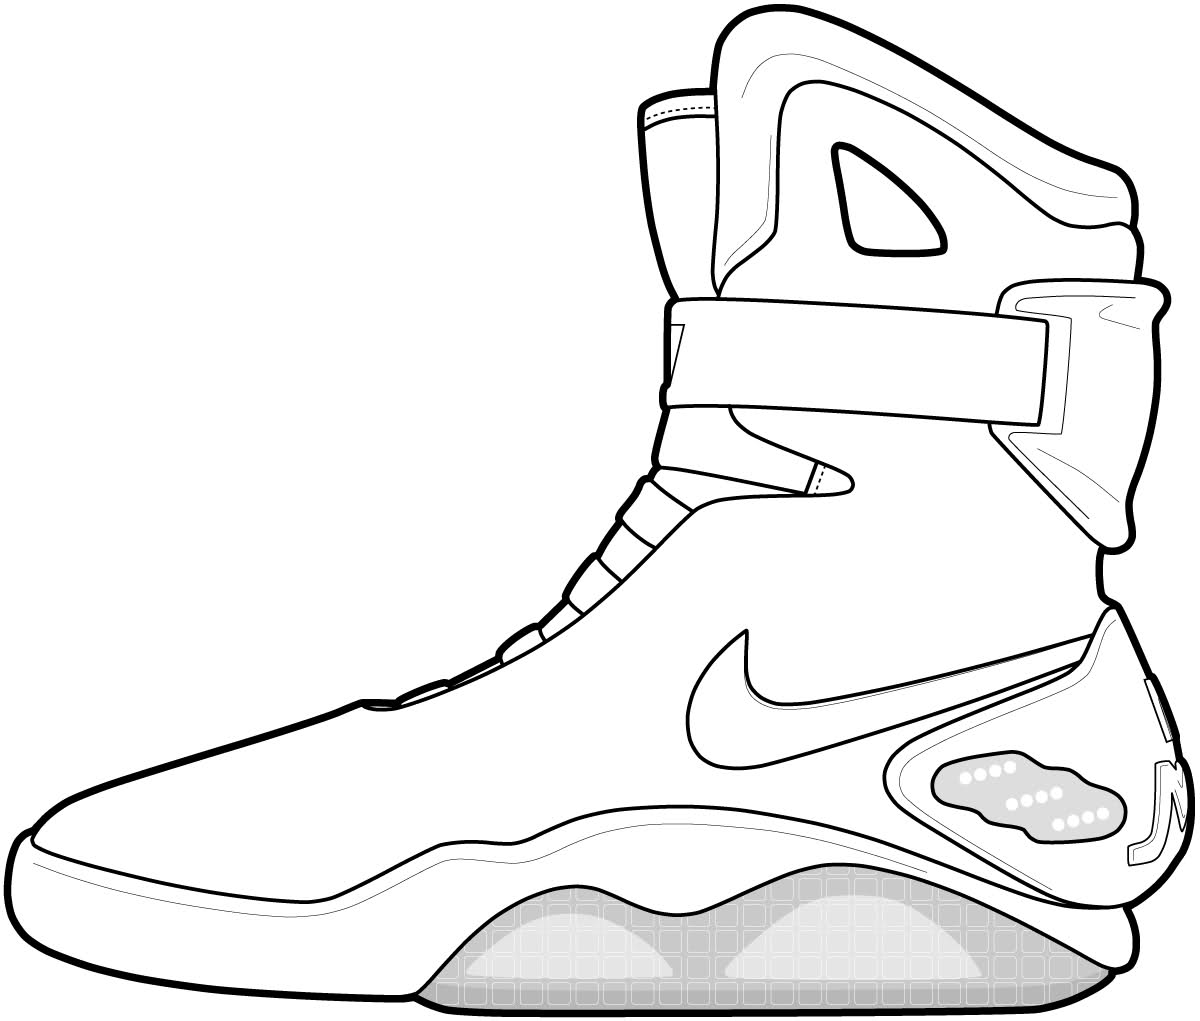 Drawn converse side view Drawing curry shoes image step